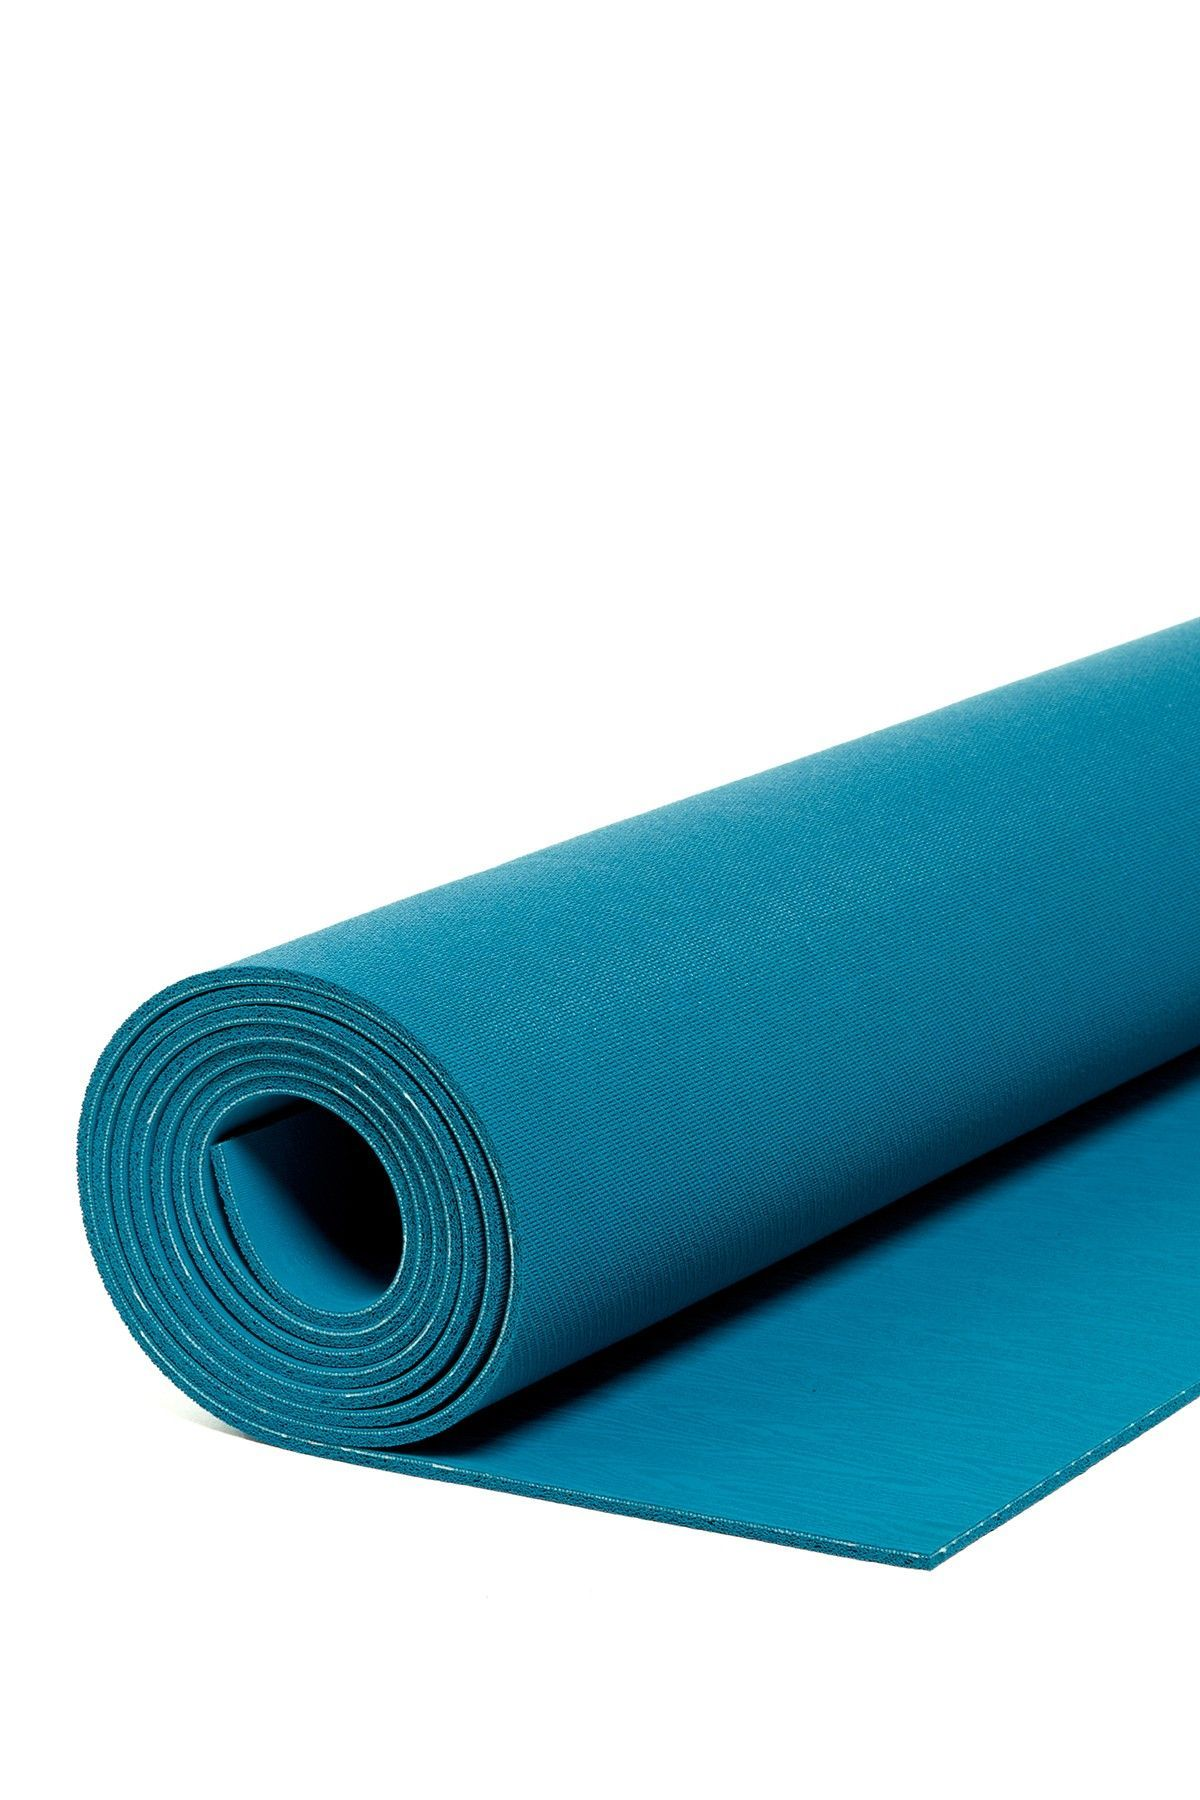 strap tear carrying classic rubber slip aurorae mat w exercise thick non product yoga rosin mats anti